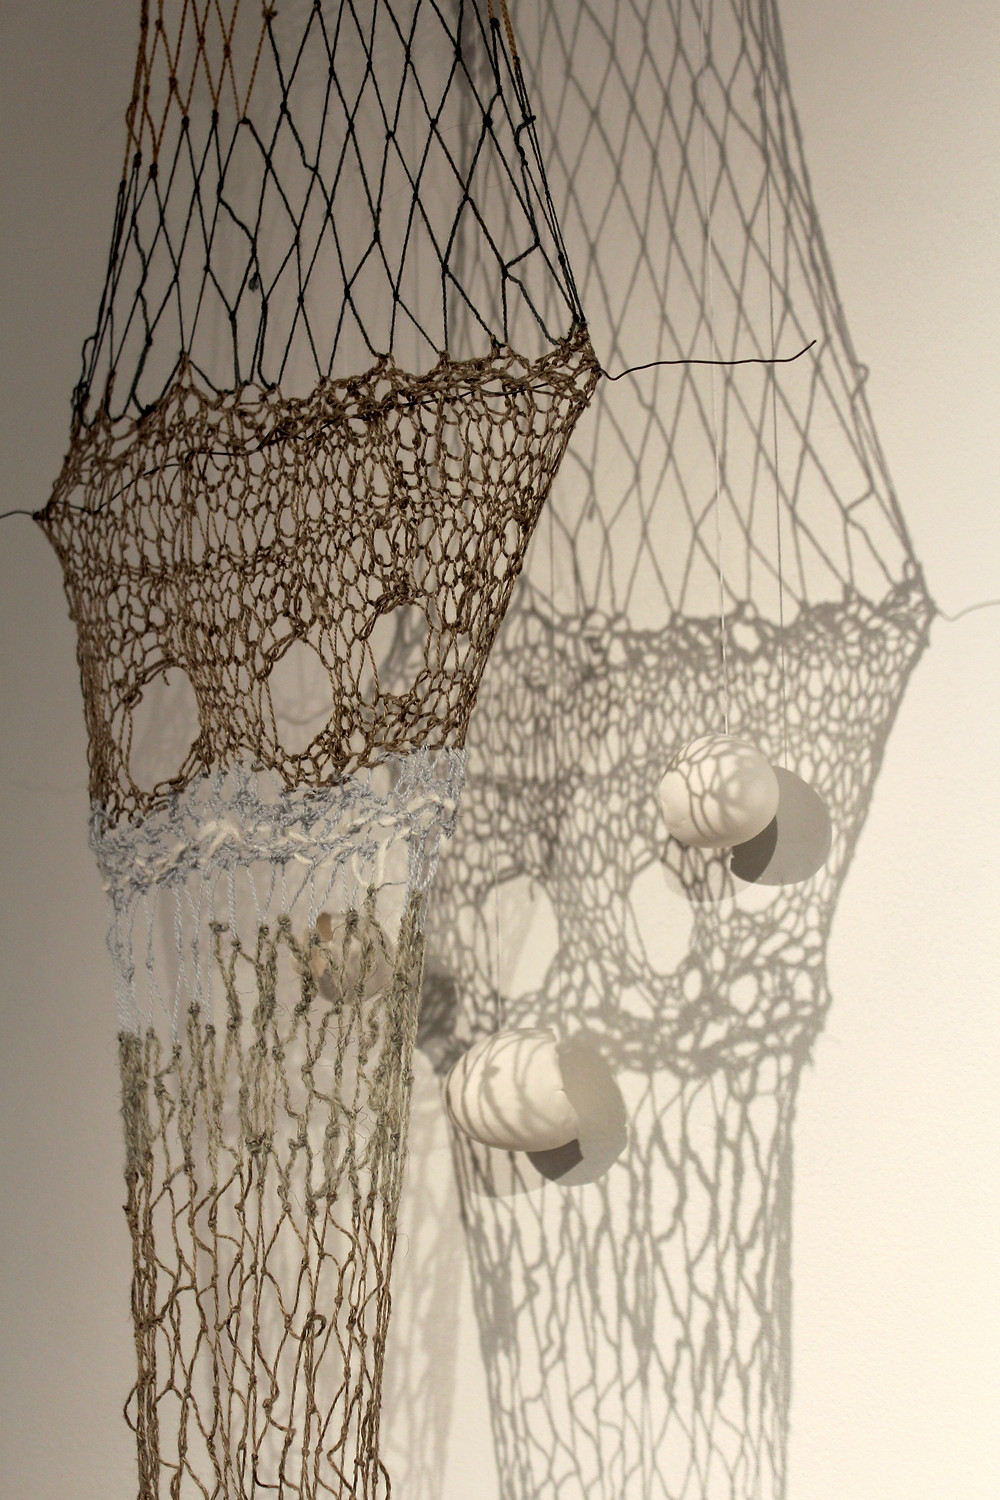 Detail from The Crossing (800 miles) - ceramic, linen, wool, silk, stone, wire, light, sound